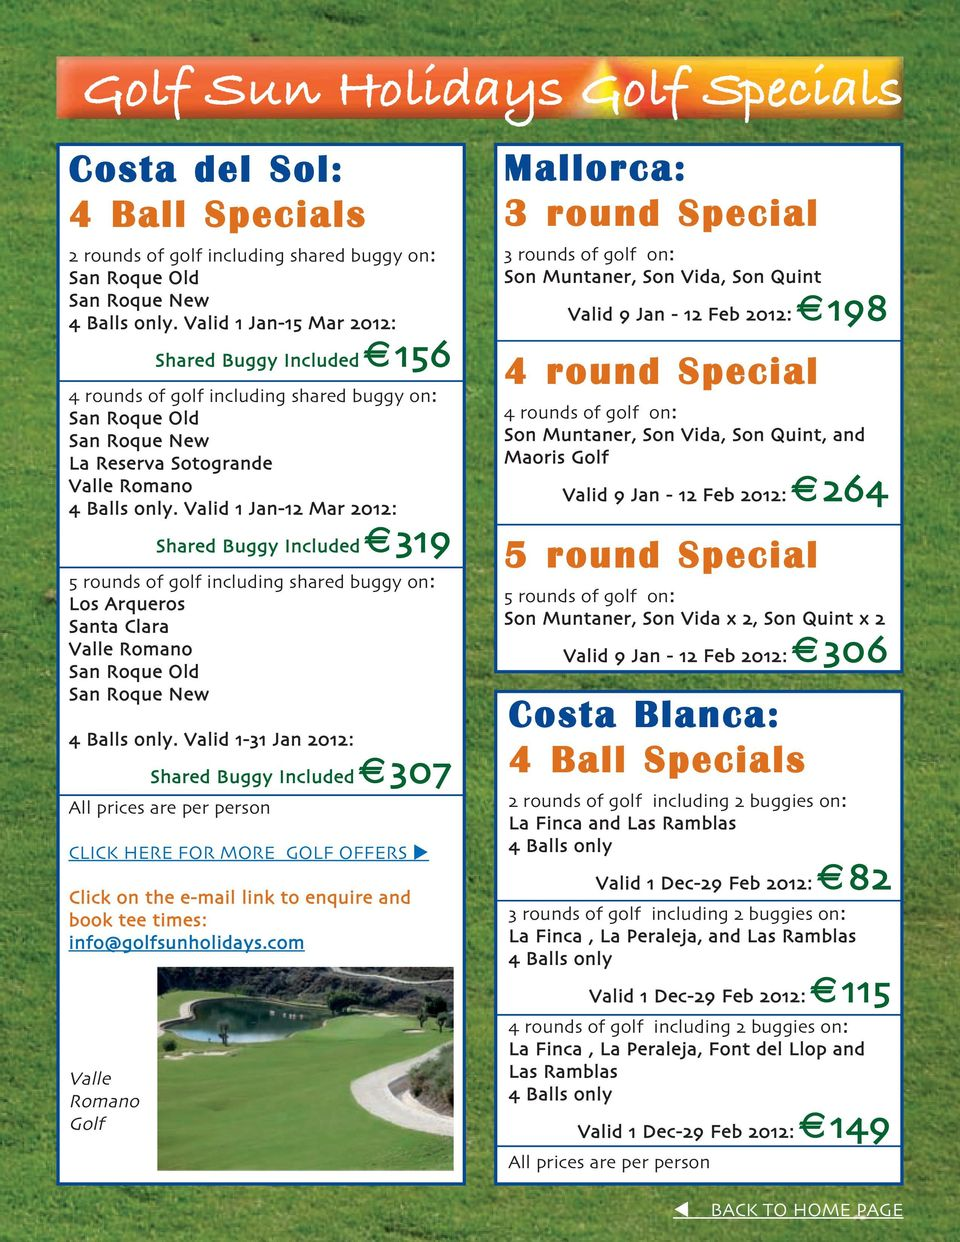 Valid 1 Jan-12 Mar 2012: Shared Buggy Included 319 5 rounds of golf including shared buggy on: Los Arqueros Santa Clara Valle Romano San Roque Old San Roque New 4 Balls only.